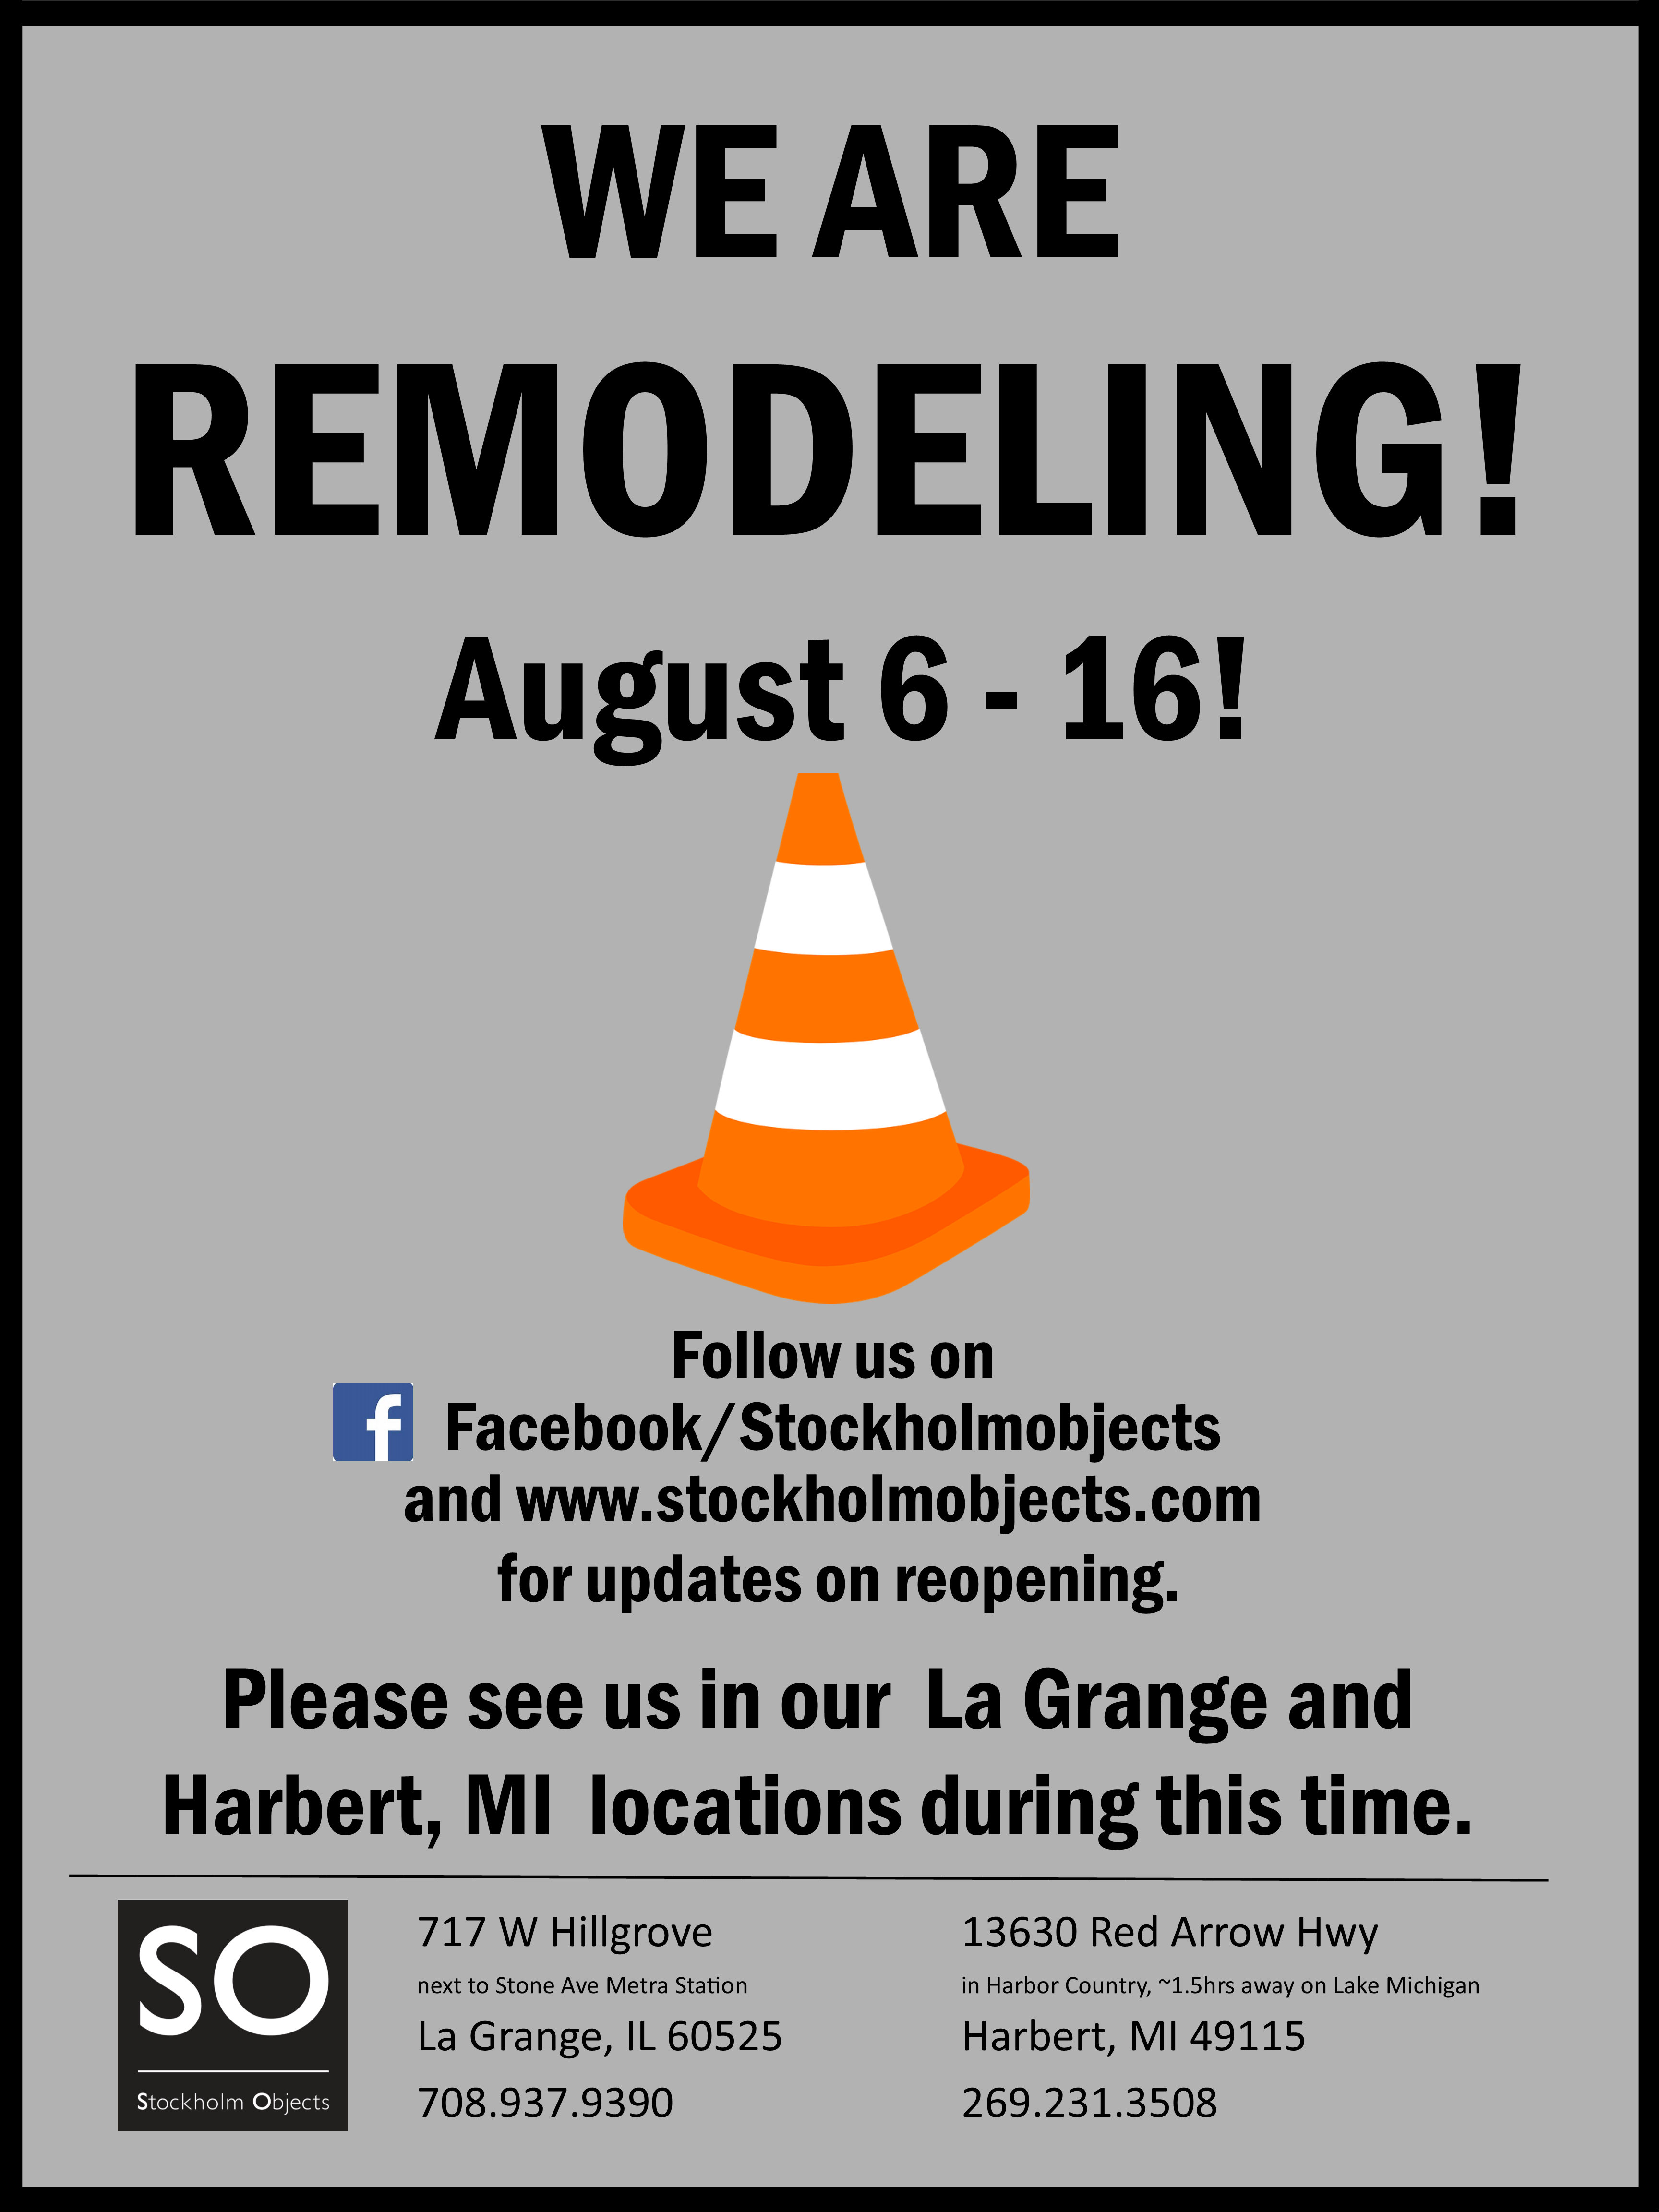 remodeling-poster-2017-2.png